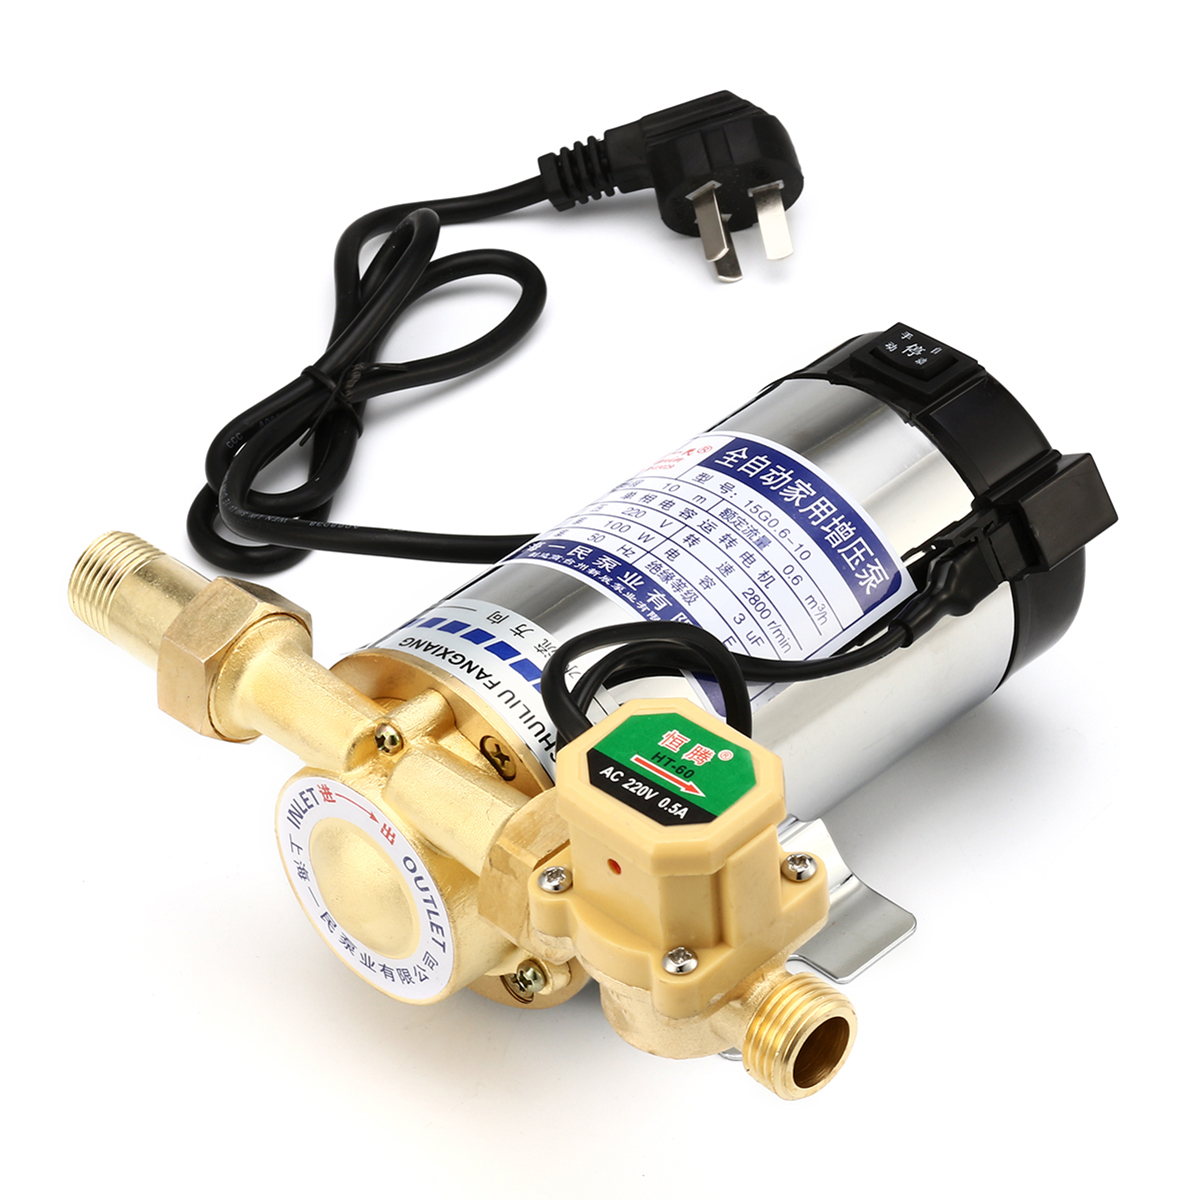 100w 150w Water Pressure Booster Pump Shower Home Electric